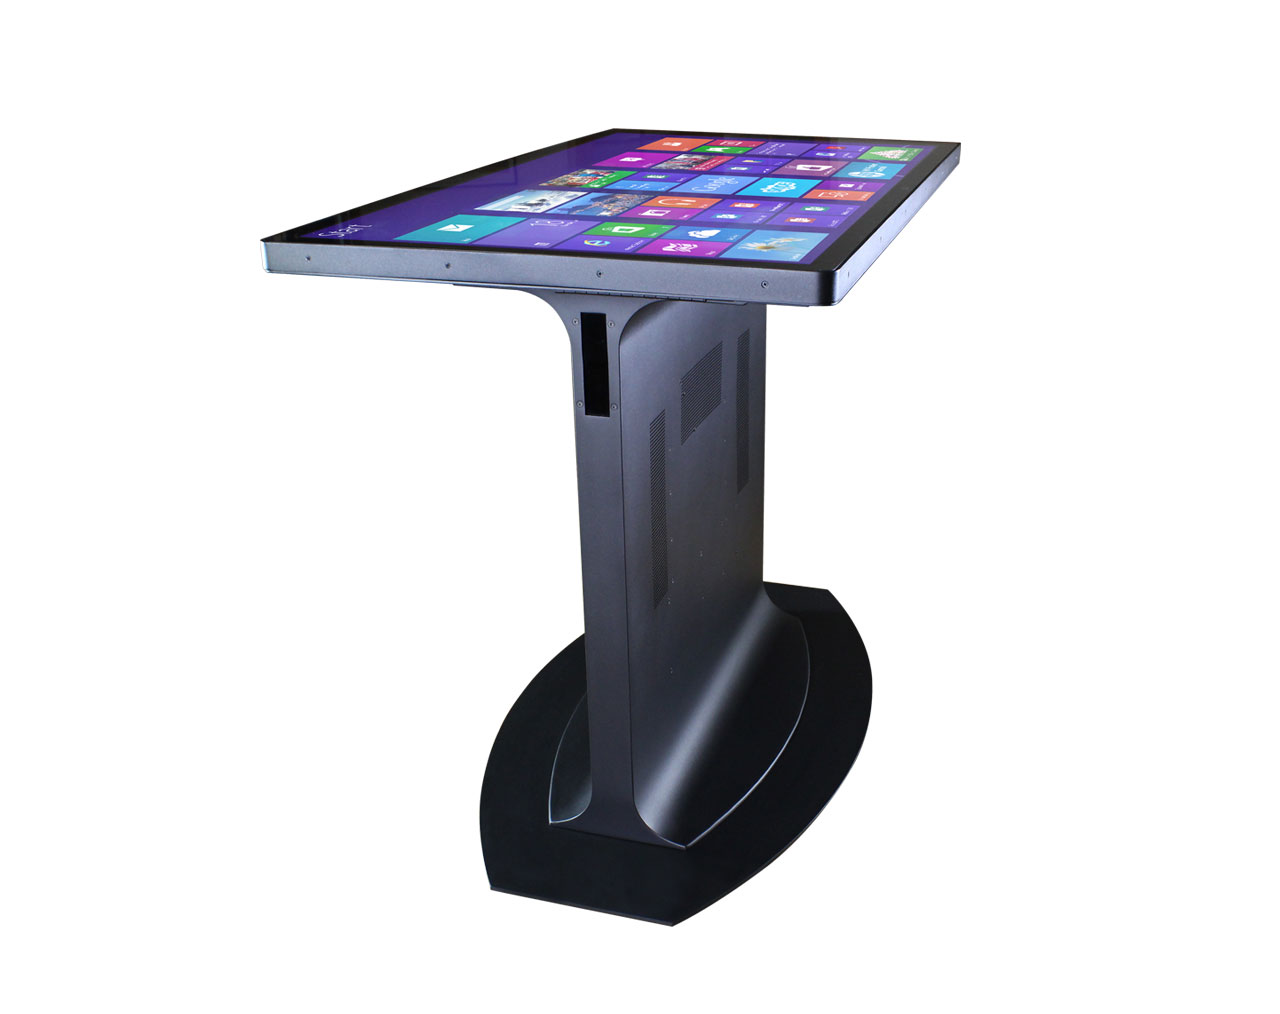 3M 46″ 'Platform' Multitouch Table Prototype